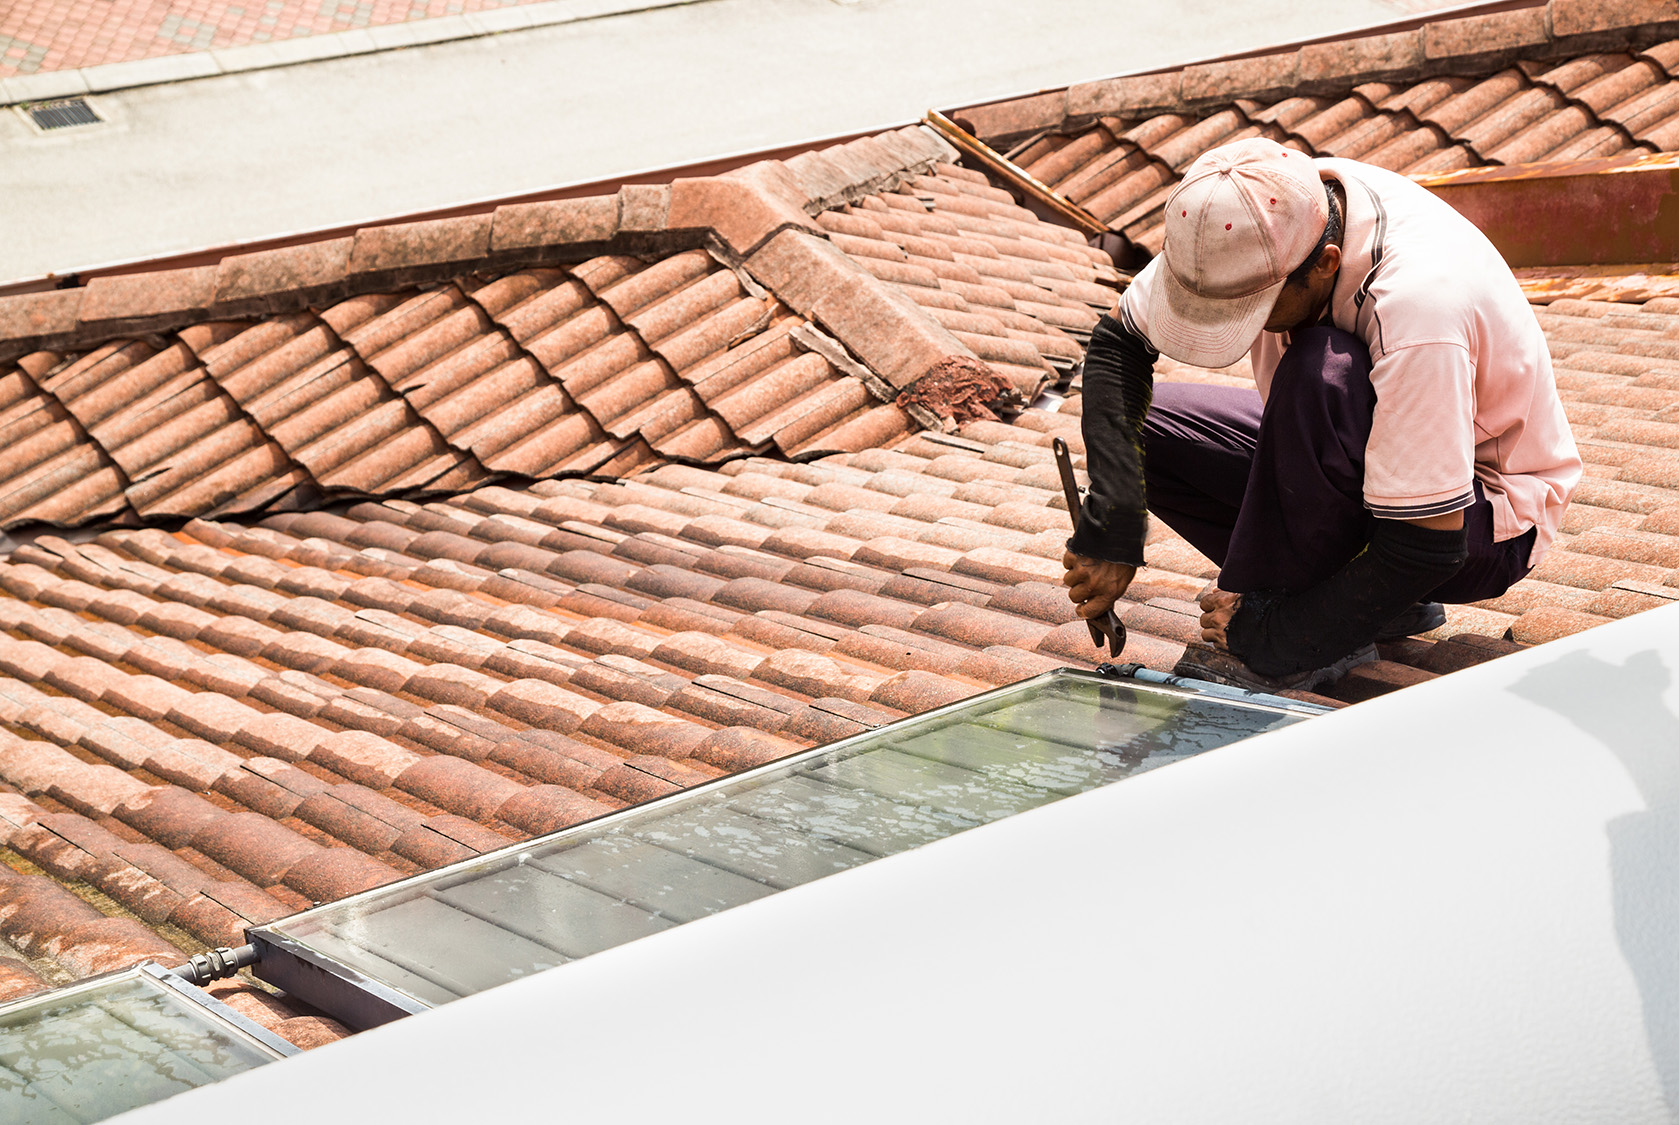 [object object] Our Team worker fixing solar water heater on roof during PY2KQR6